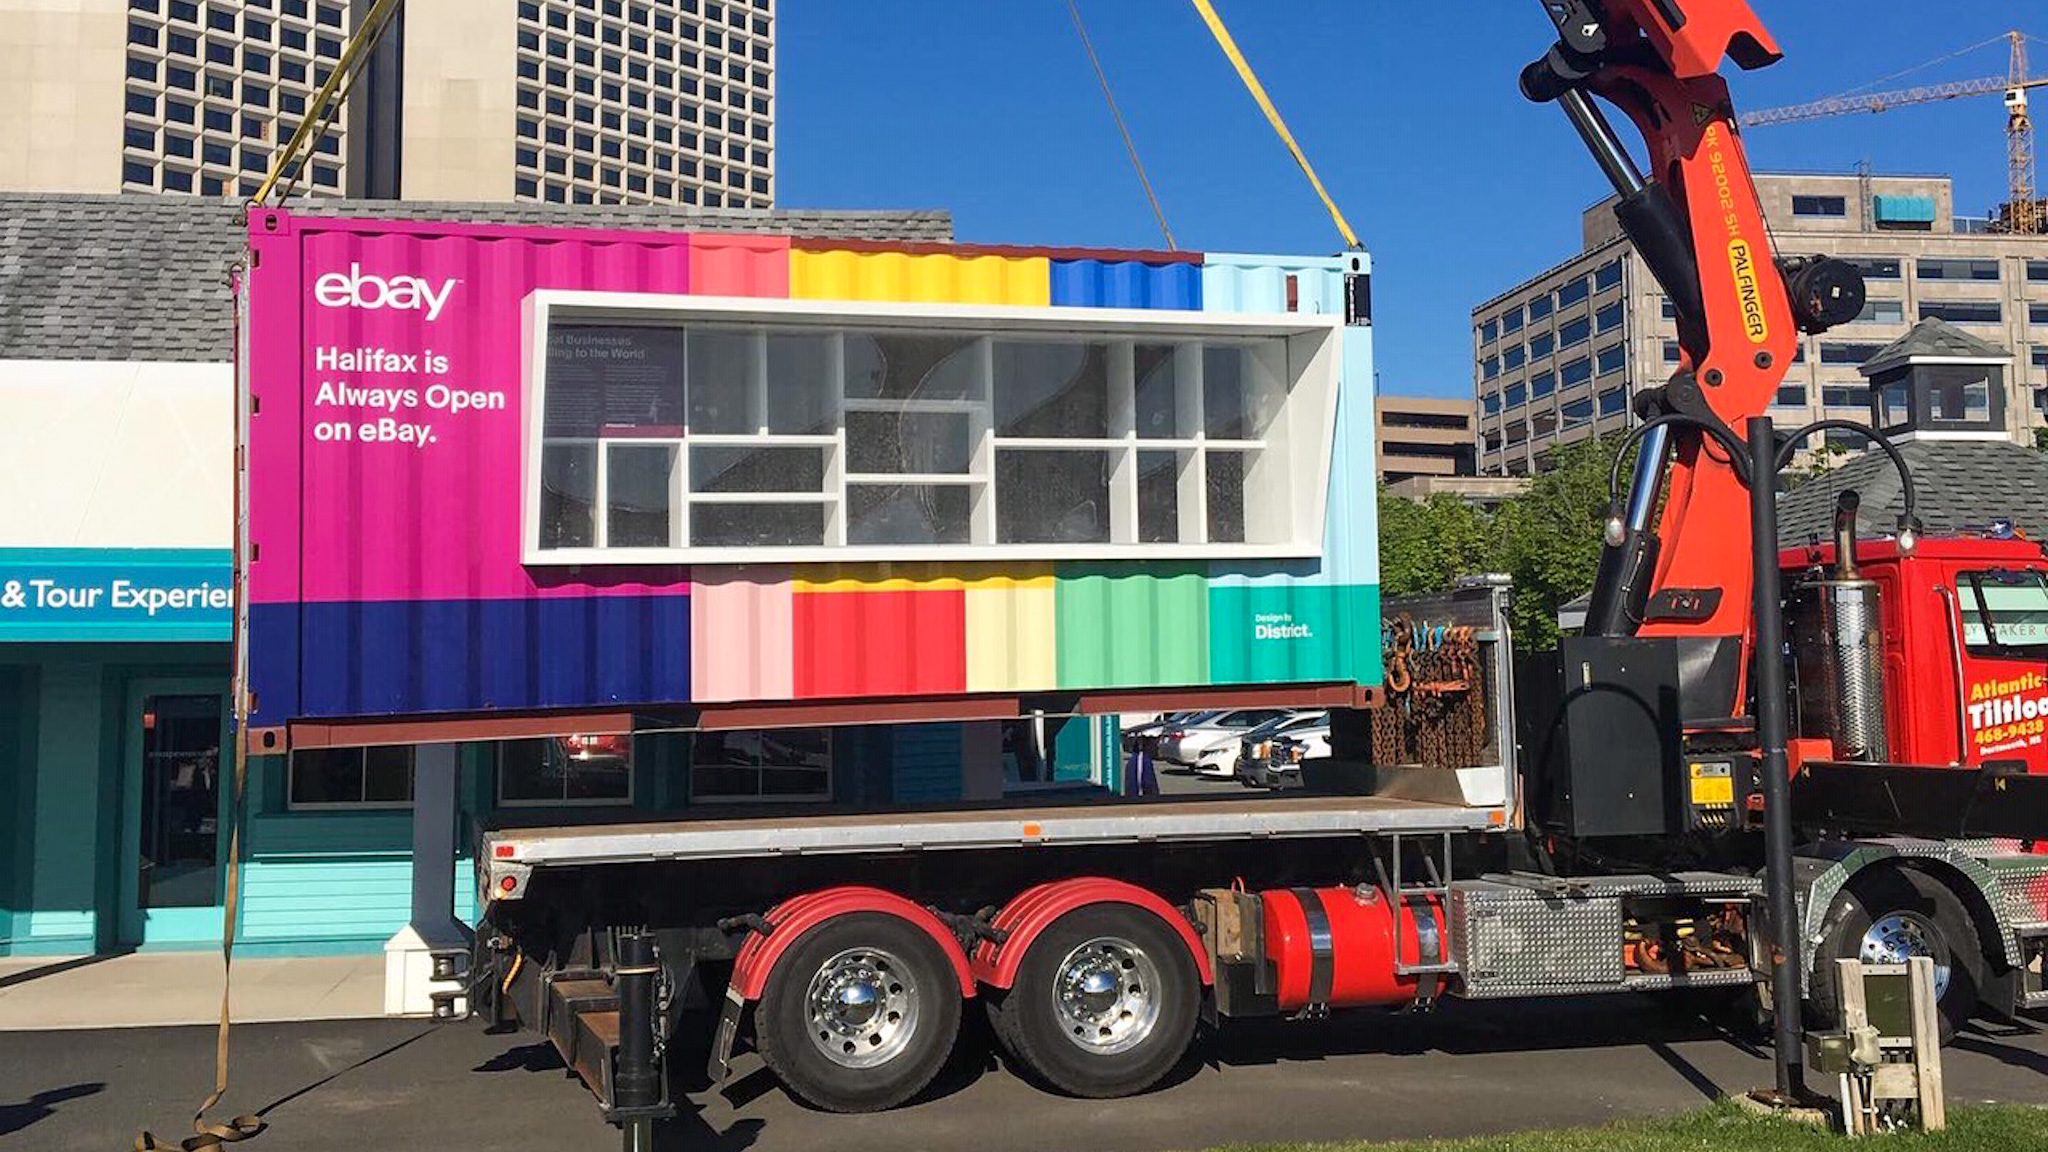 The eBay pop-up store that was placed on the waterfront last summer. Image provided by Saltbox Modern Engineered Spaces